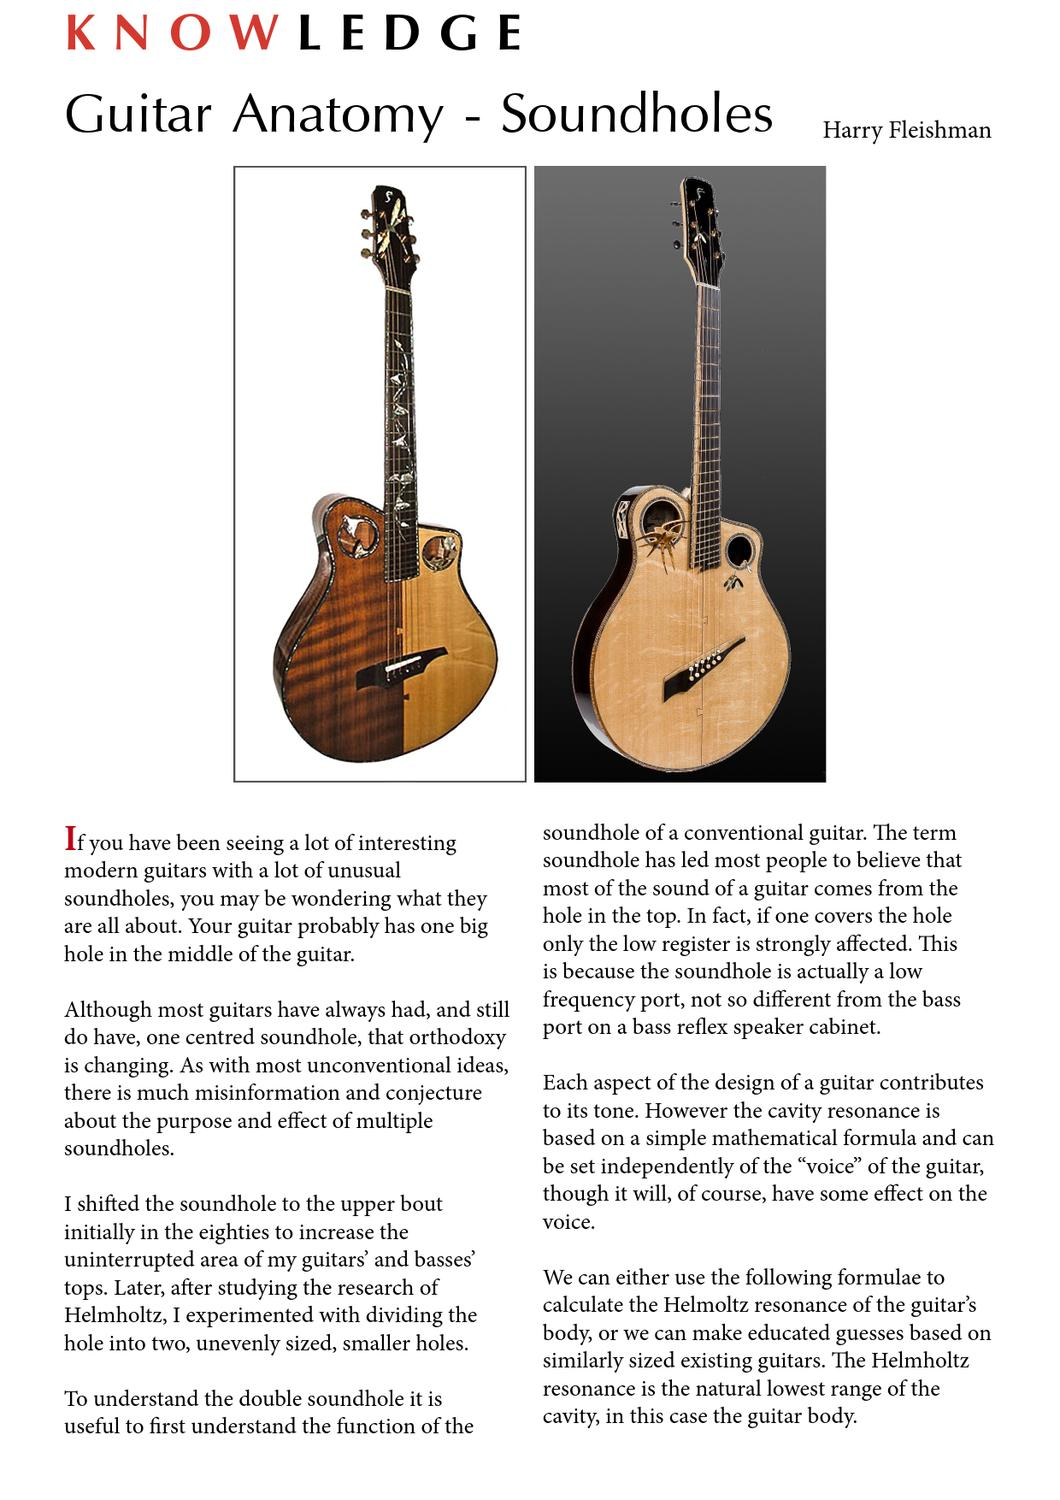 Guitarbench Magazine Issue 4 Guitar Anatomy Soundholes Article By